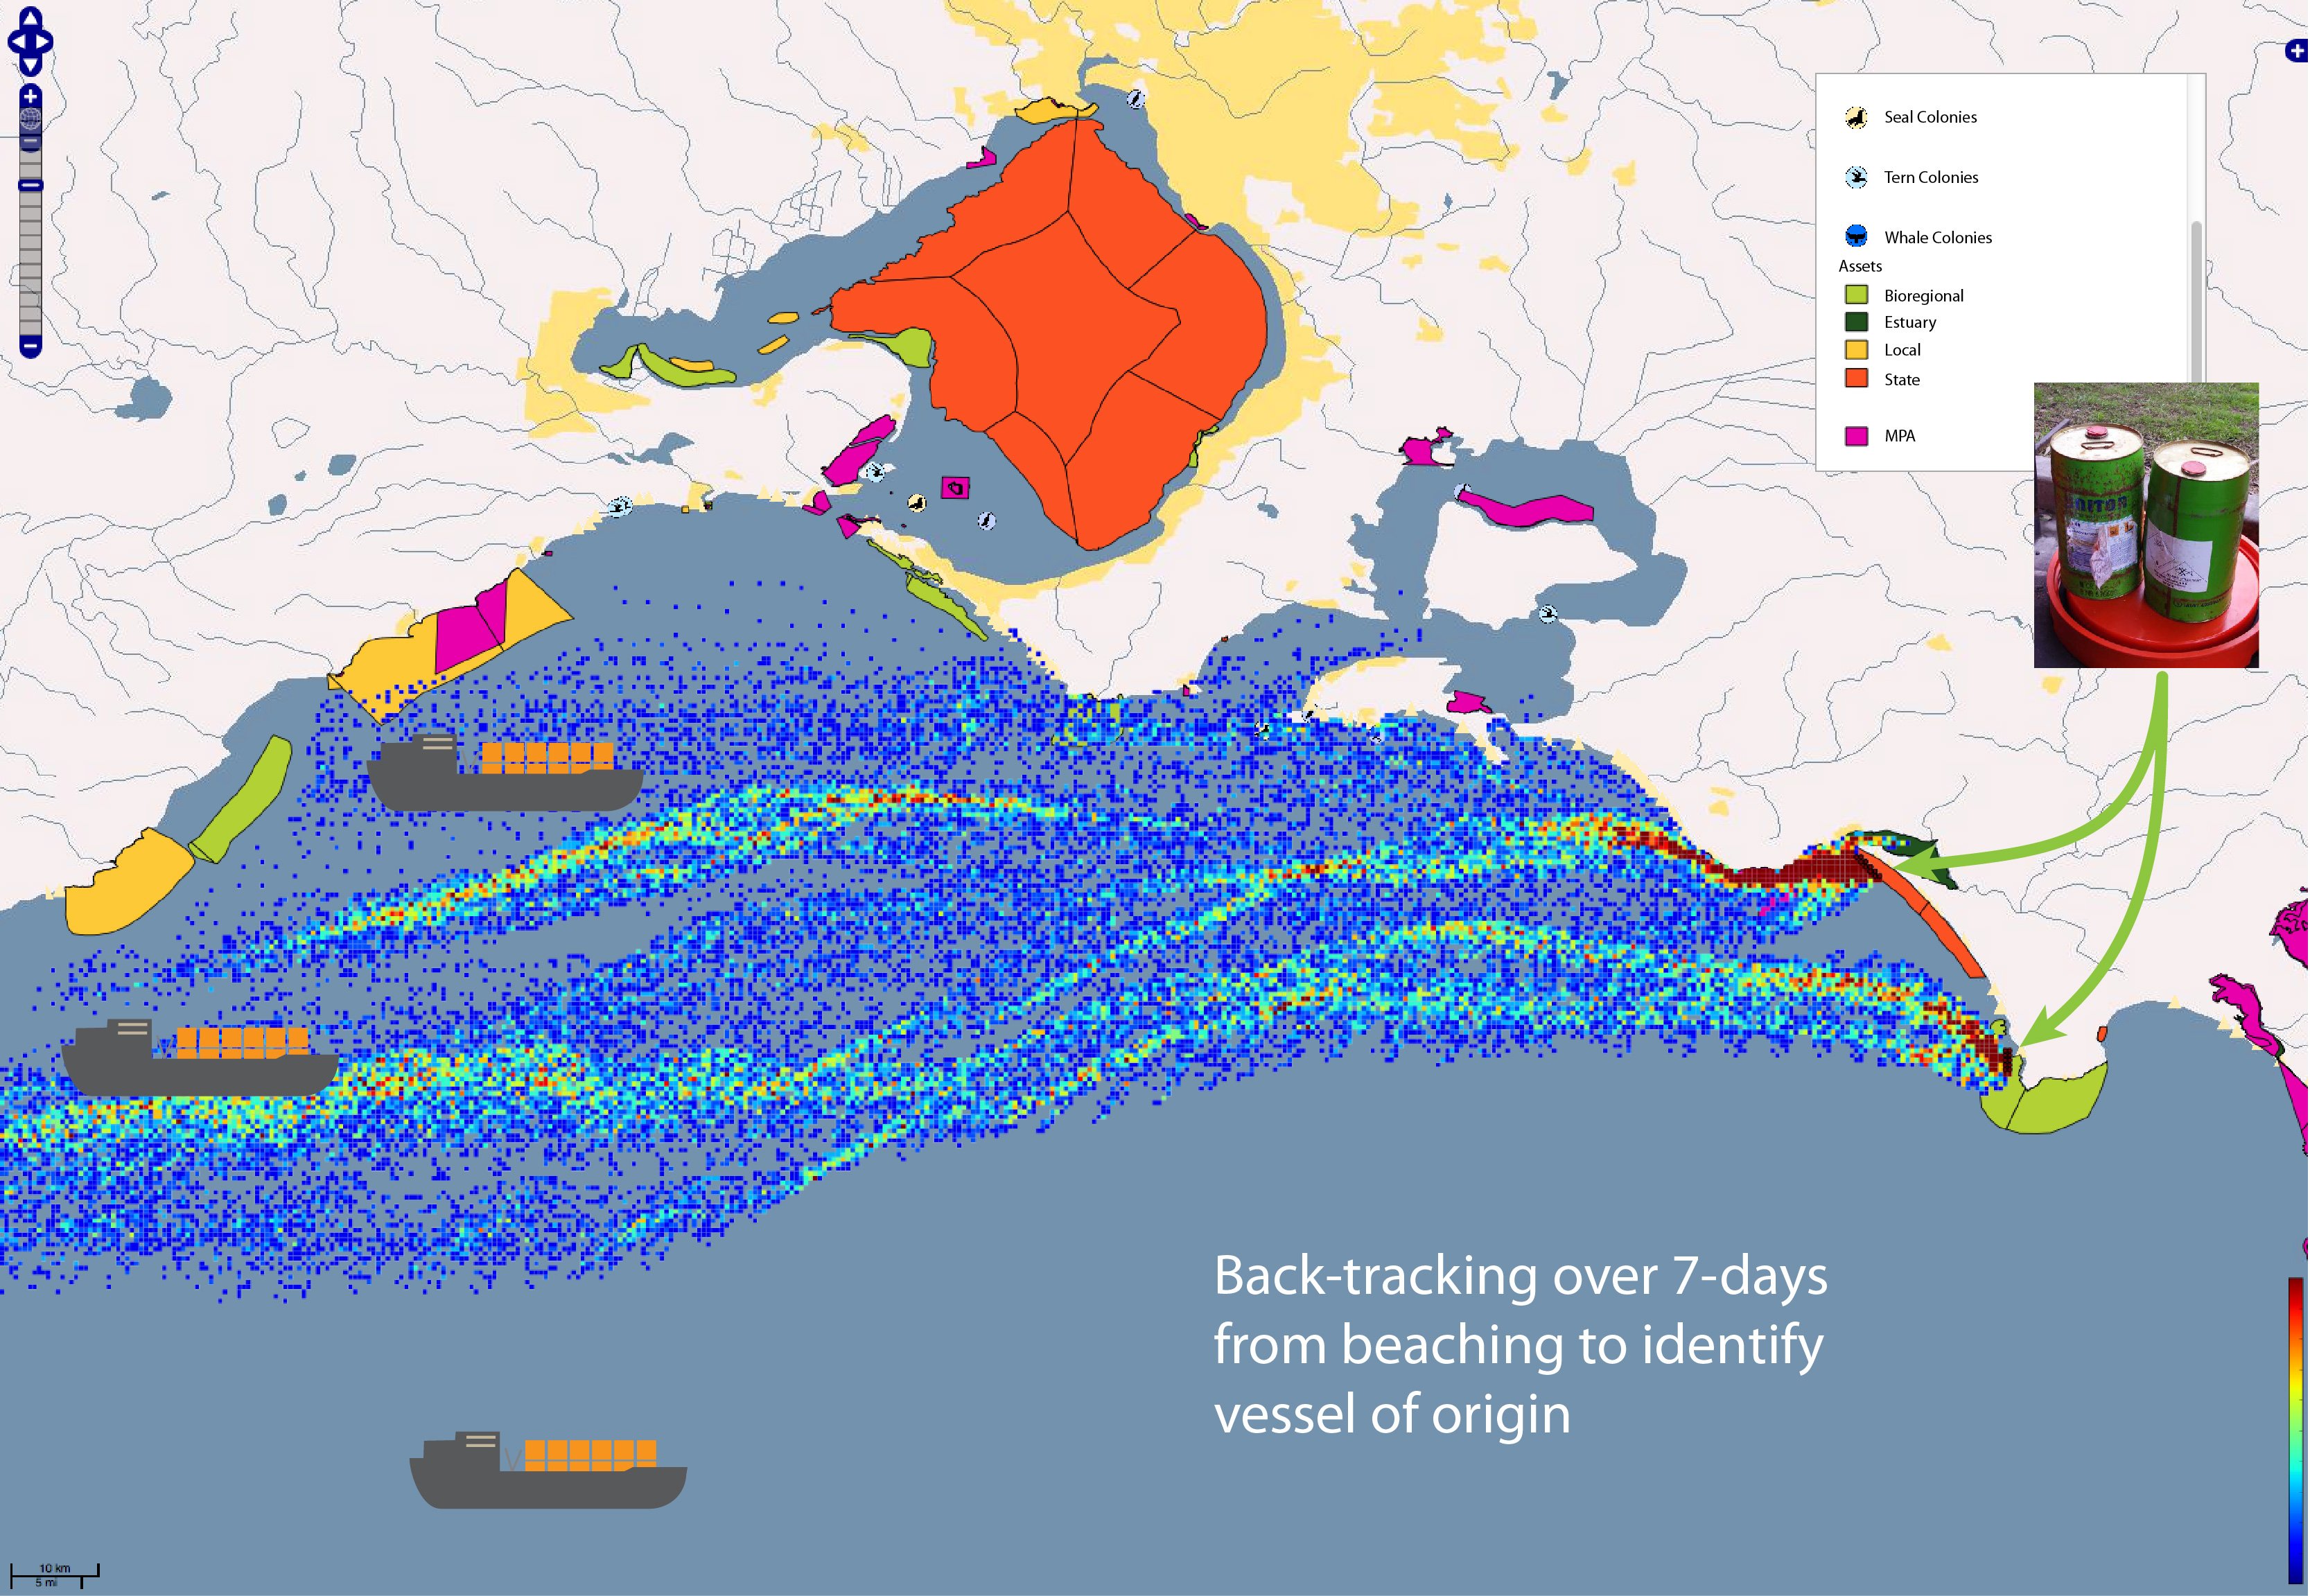 Figure shows ocean-current map and coloured plumes of possible oil-spill pathway from vessels along the southern Victorian coastline